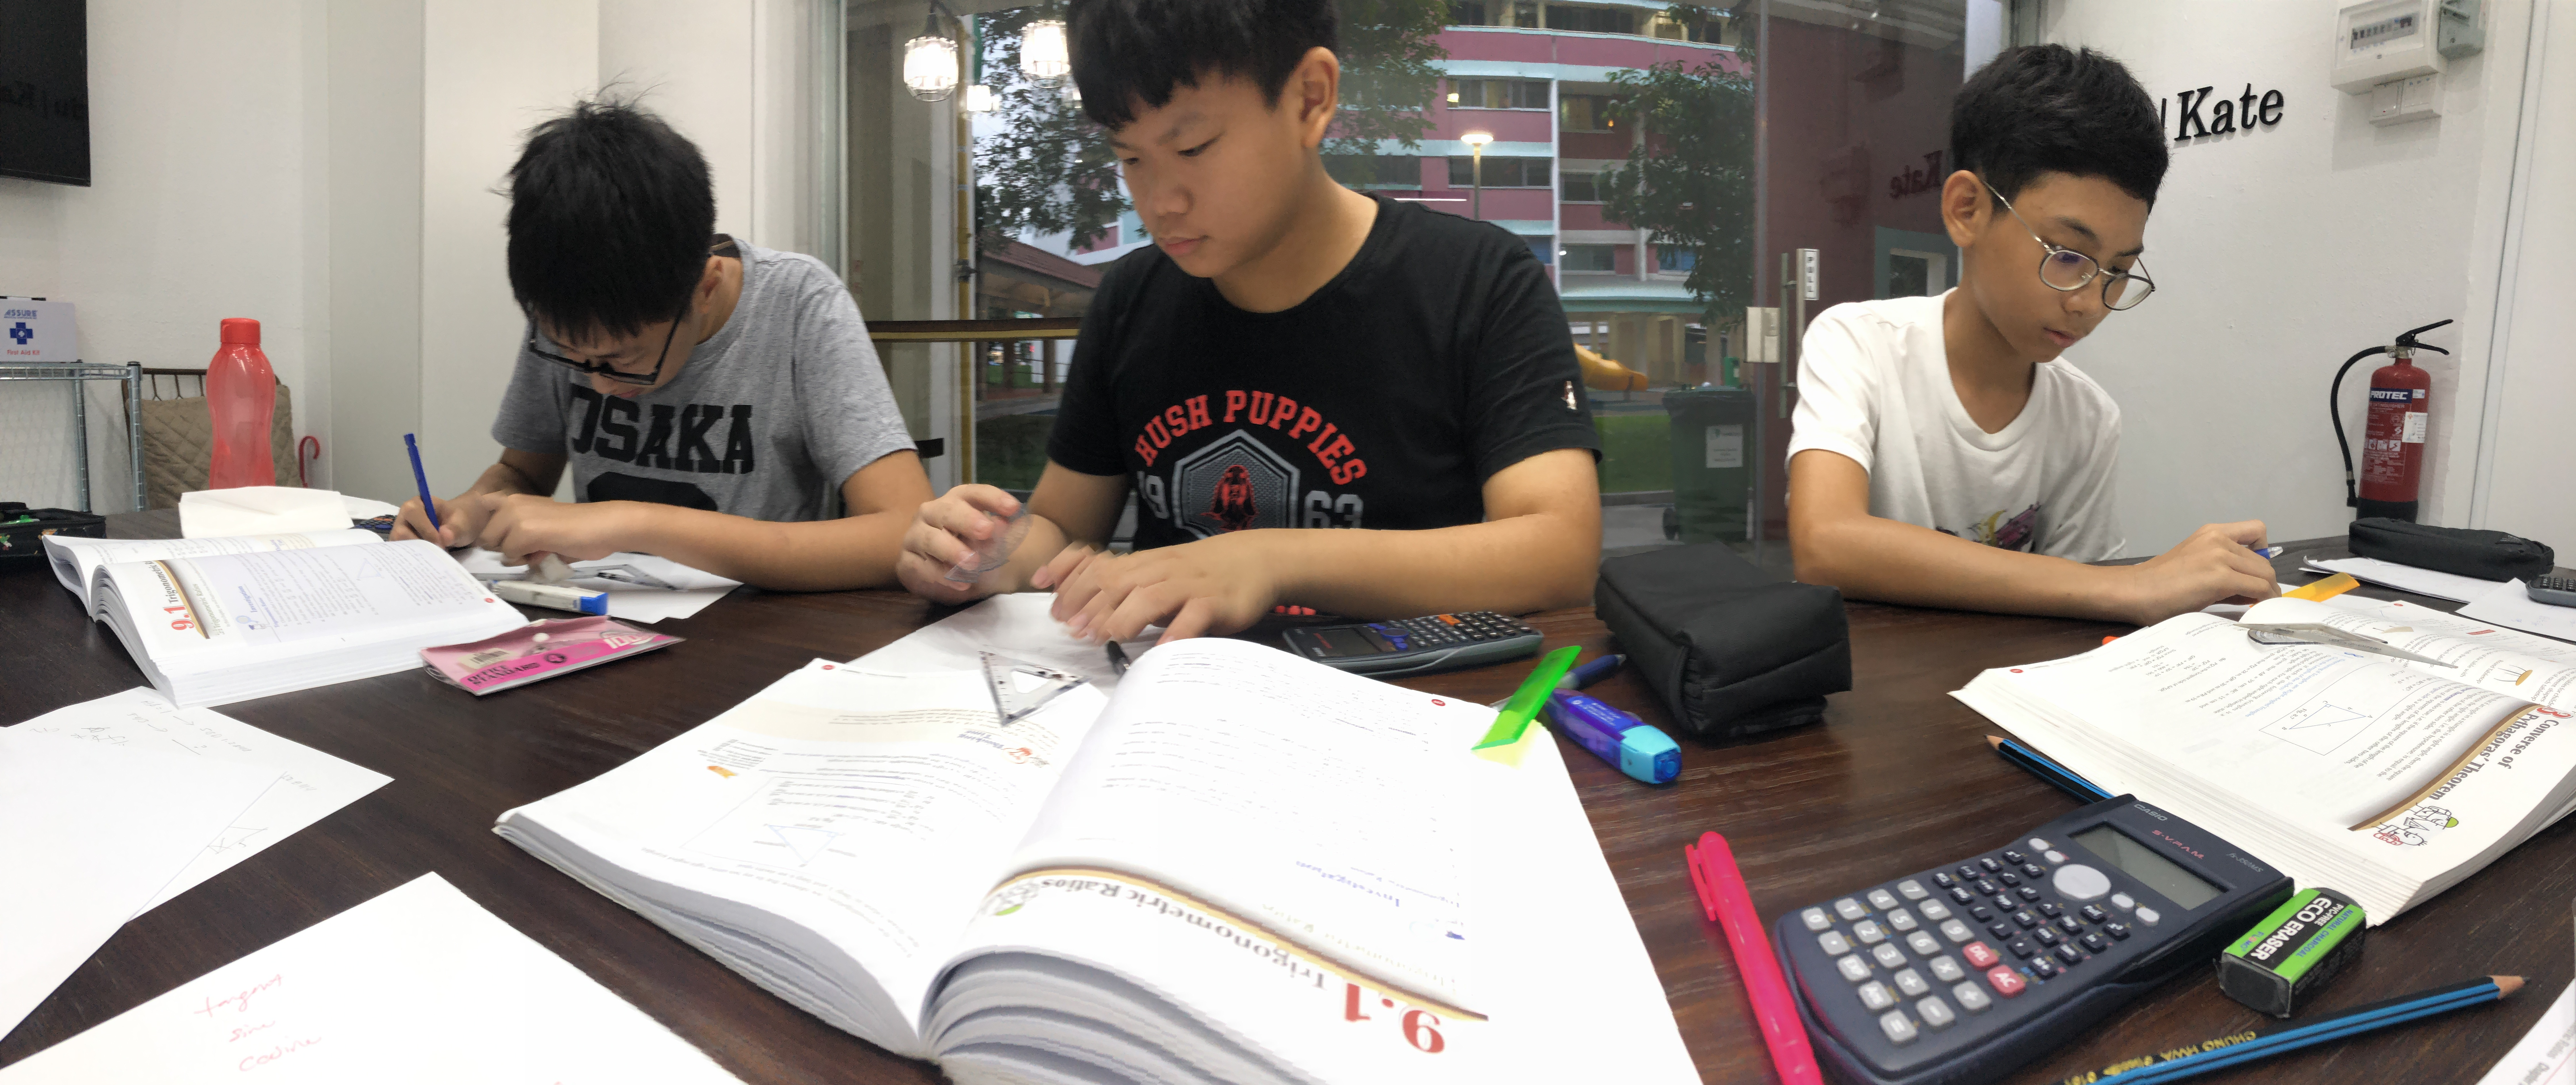 Yishun Primary Mathematics Tutor Small Group Tuition Centre for Secondary 1 Sec 1 Sec 2 Sec3 Sec4 Sec5 E Maths A Maths Additional Maths GCE O levels PSLE IGCSE eduKate Yishun Primary Maths Science PSLE English Pri 1 2 3 4 5 6